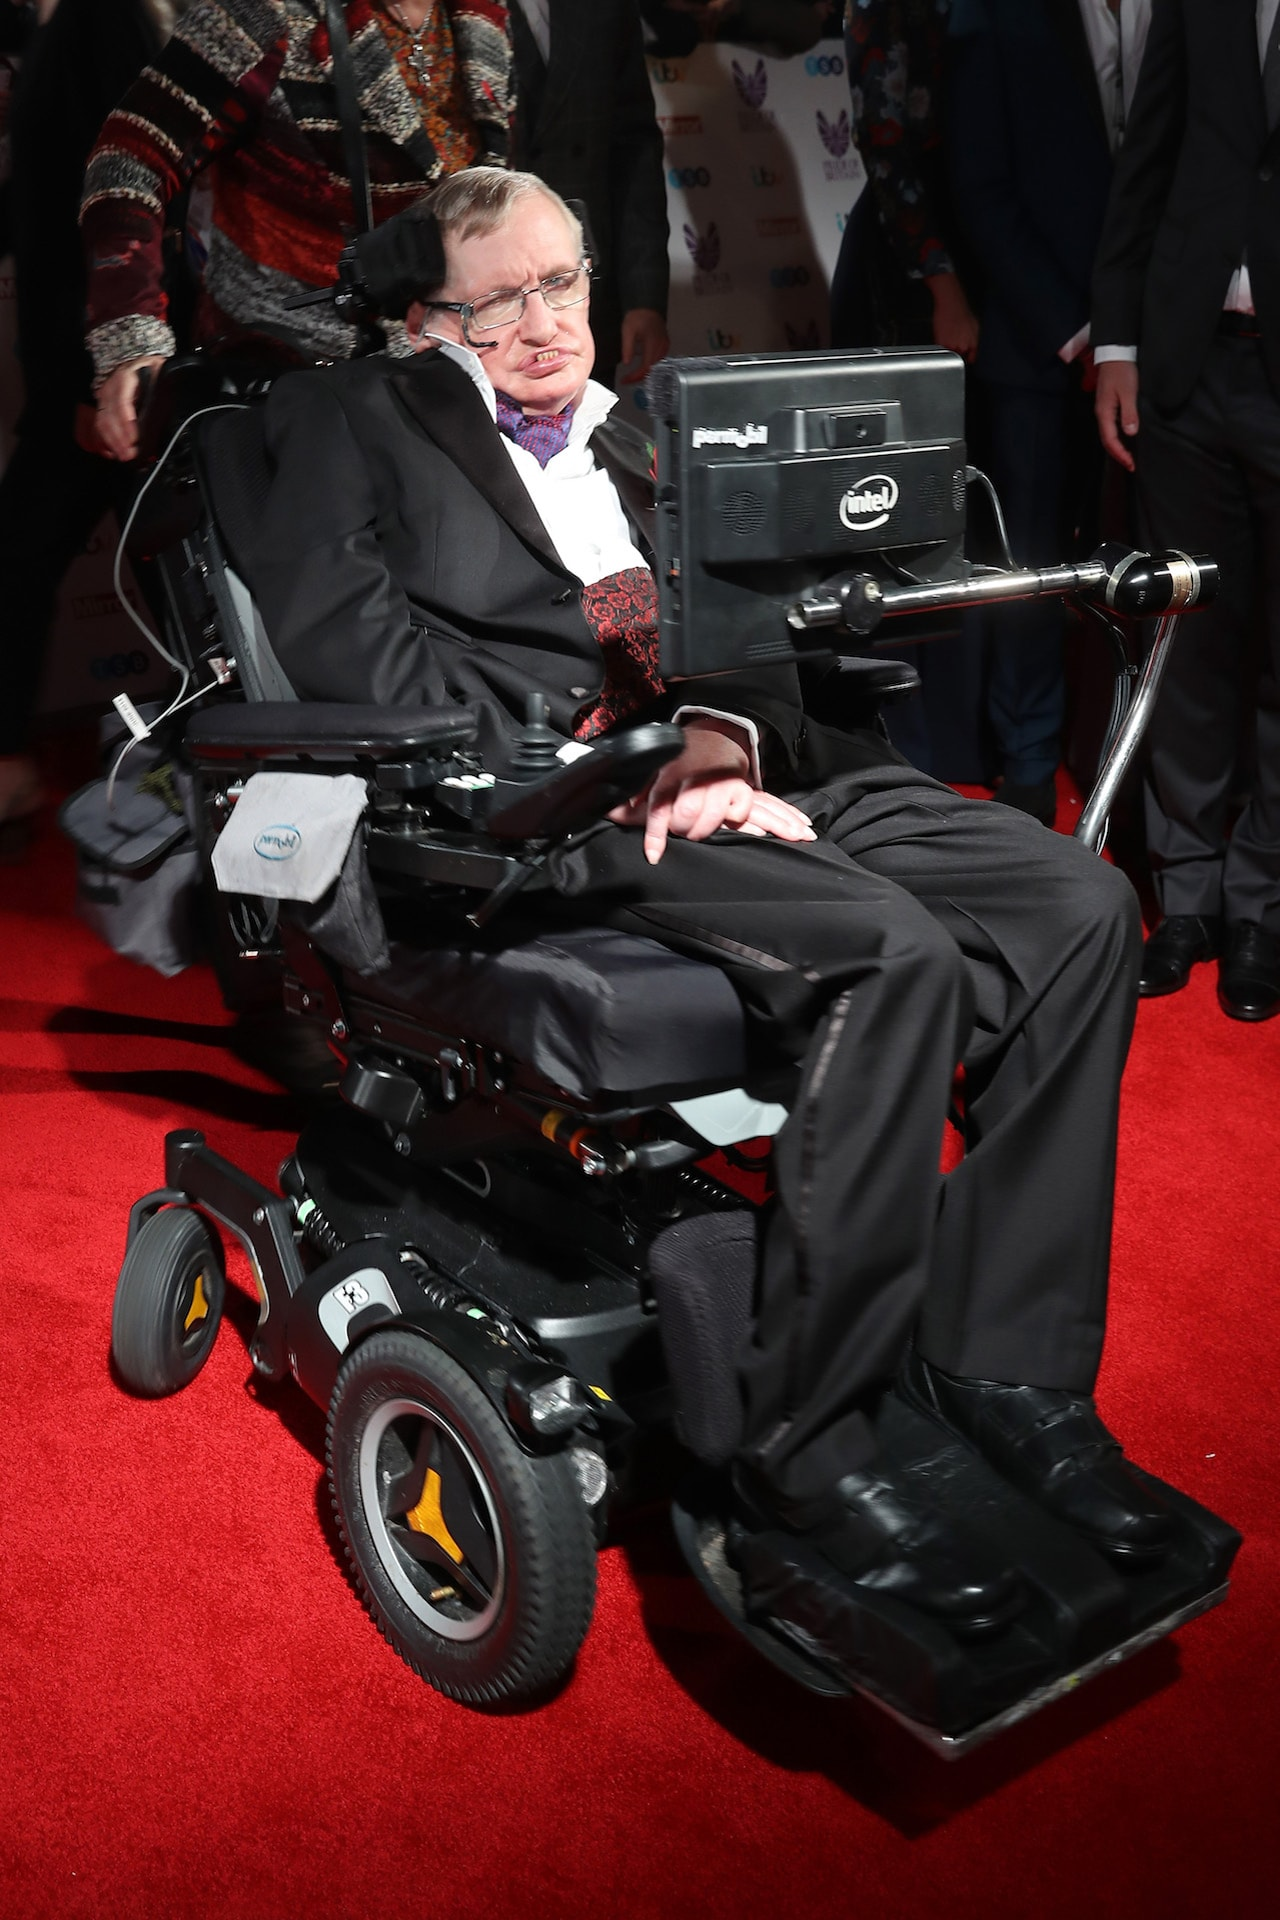 Stephen Hawking is dead at age 76